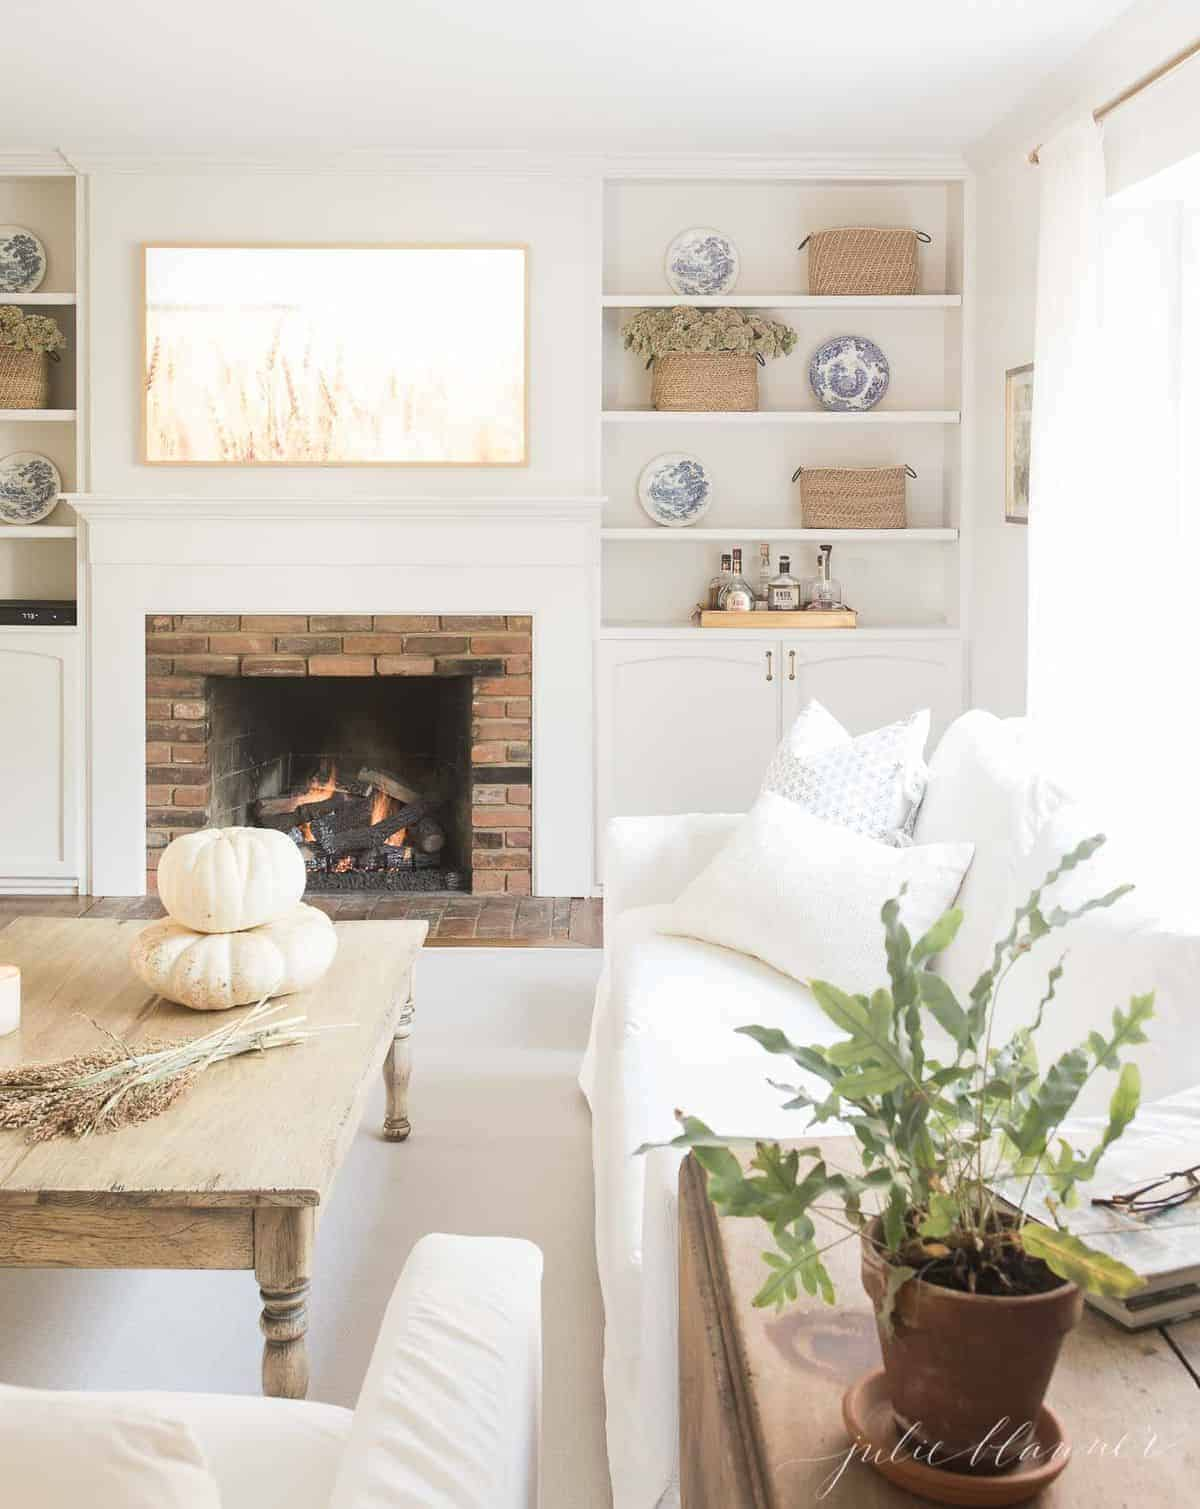 A white living room with a fireplace, built-ins, and a living room rug over hardwood floors.